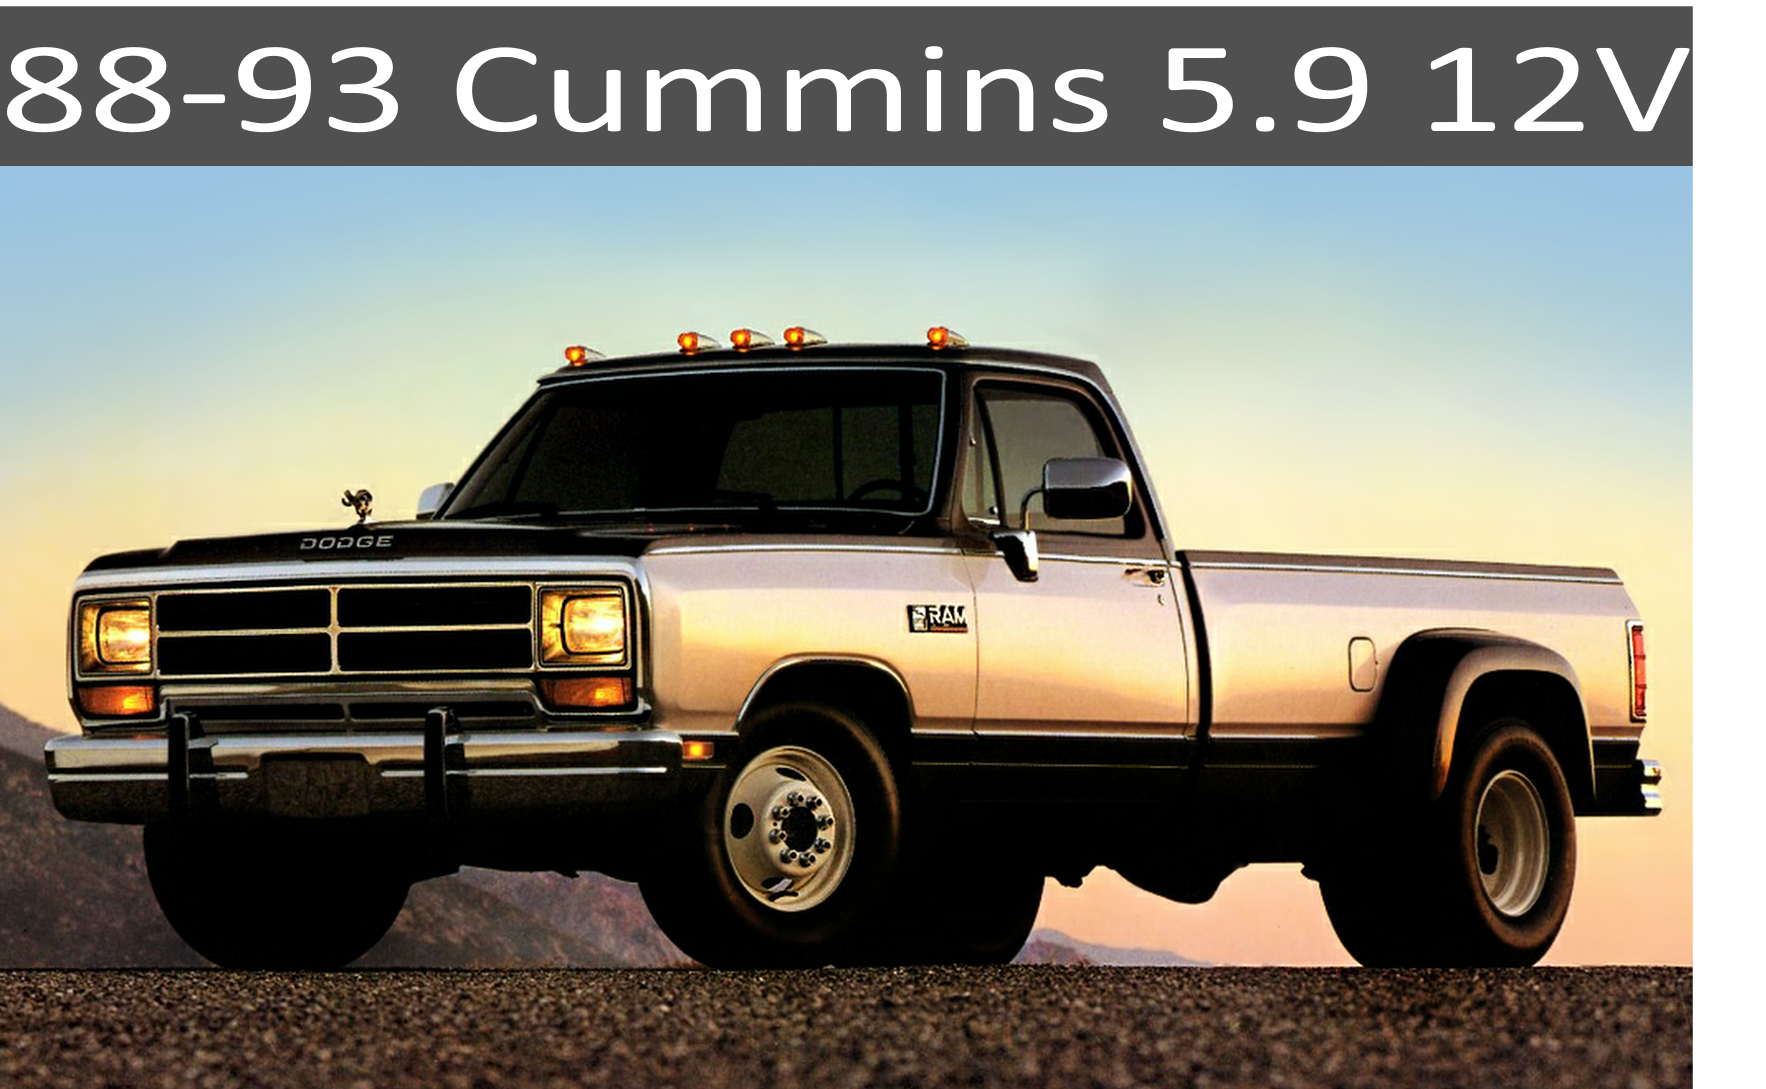 88-93 Dodge Cummins 5.9 Parts